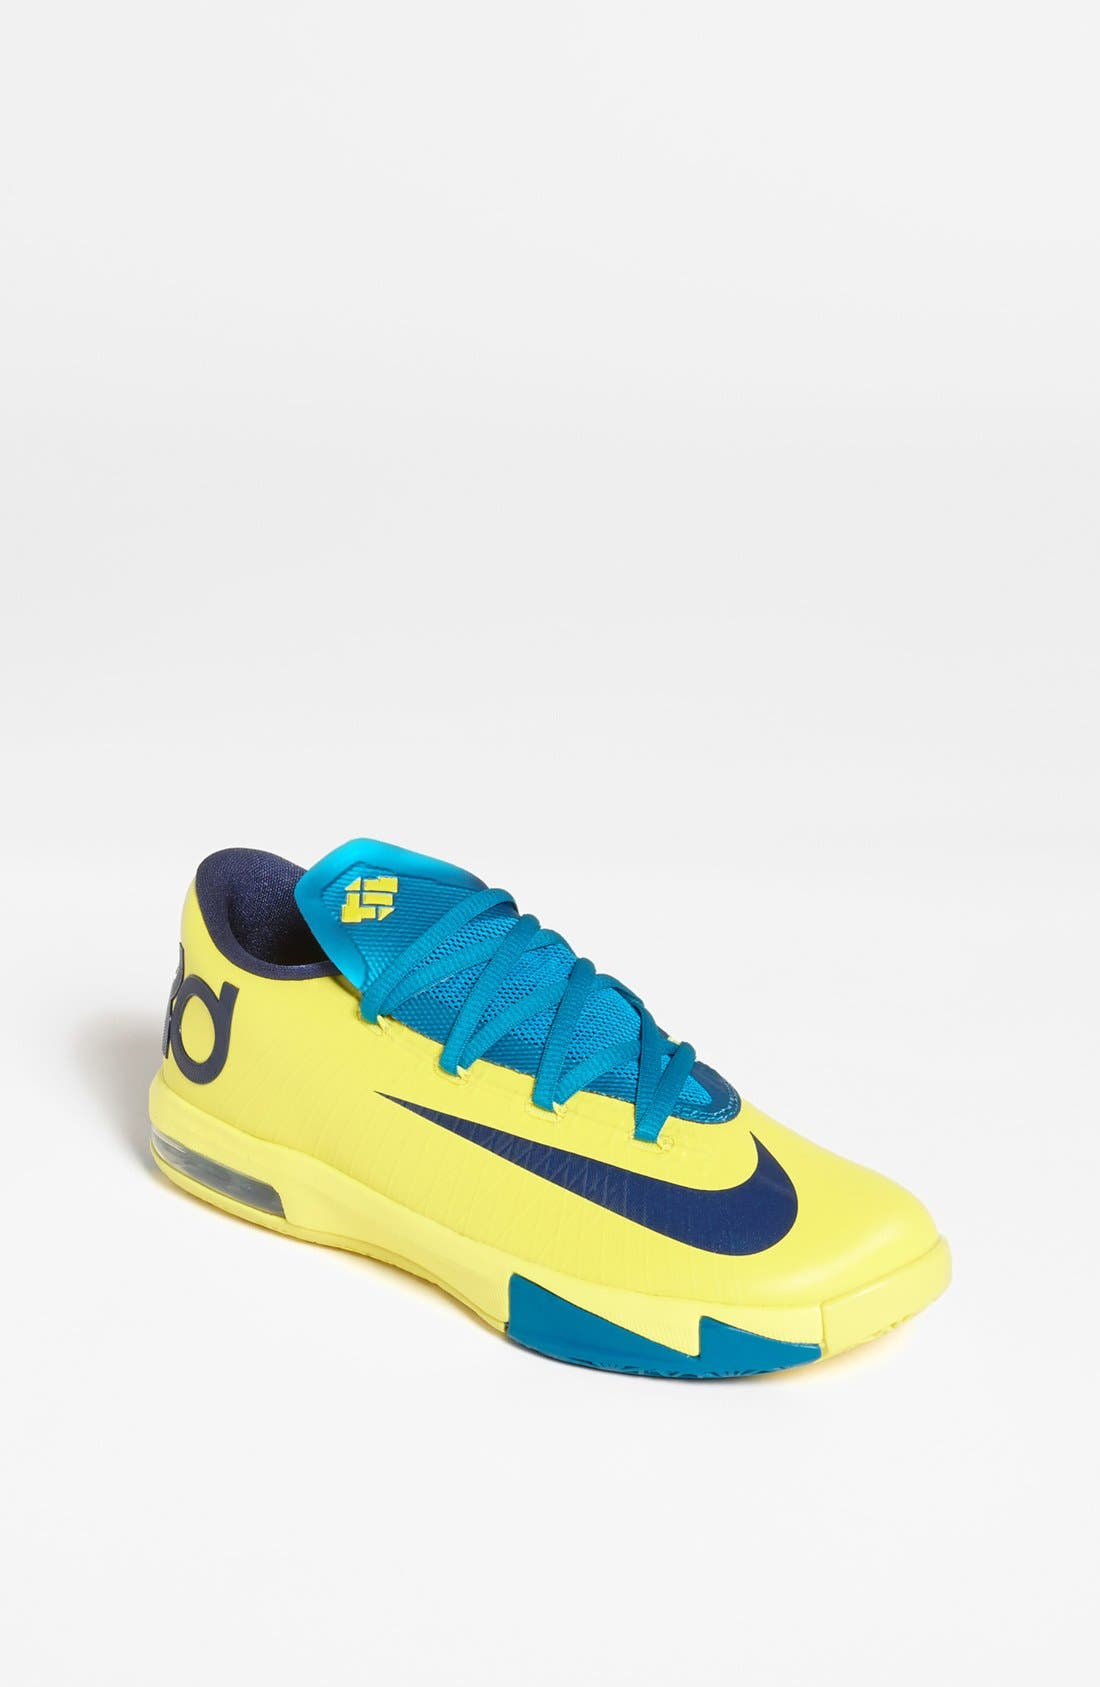 Main Image - Nike 'KD VI' Basketball Shoe (Big Kid)